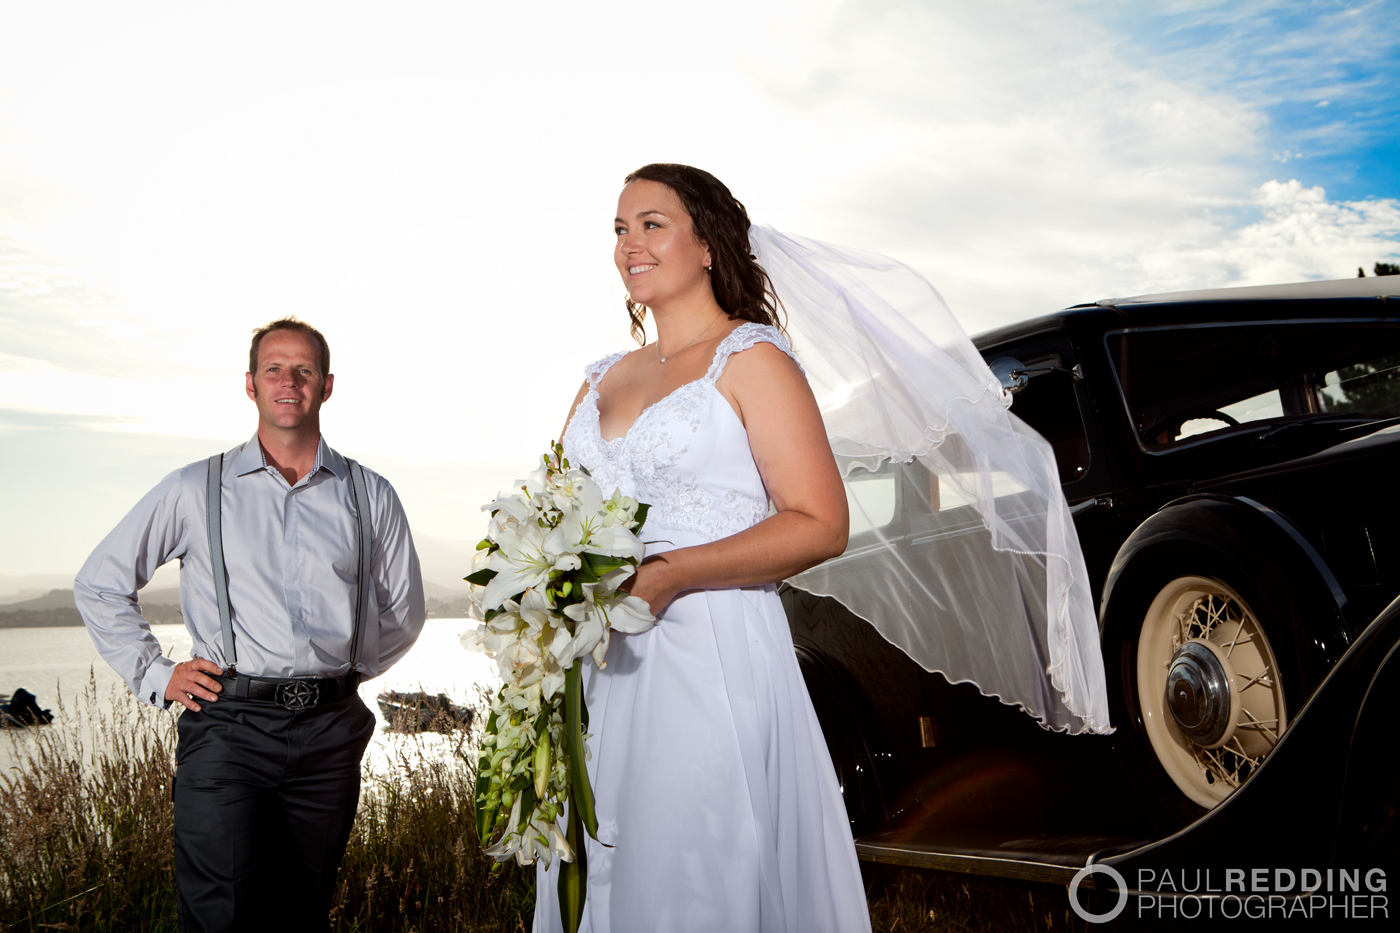 Wedding photography at Dover, Huon Valley, Tasmania by wedding photographer Paul Redding.